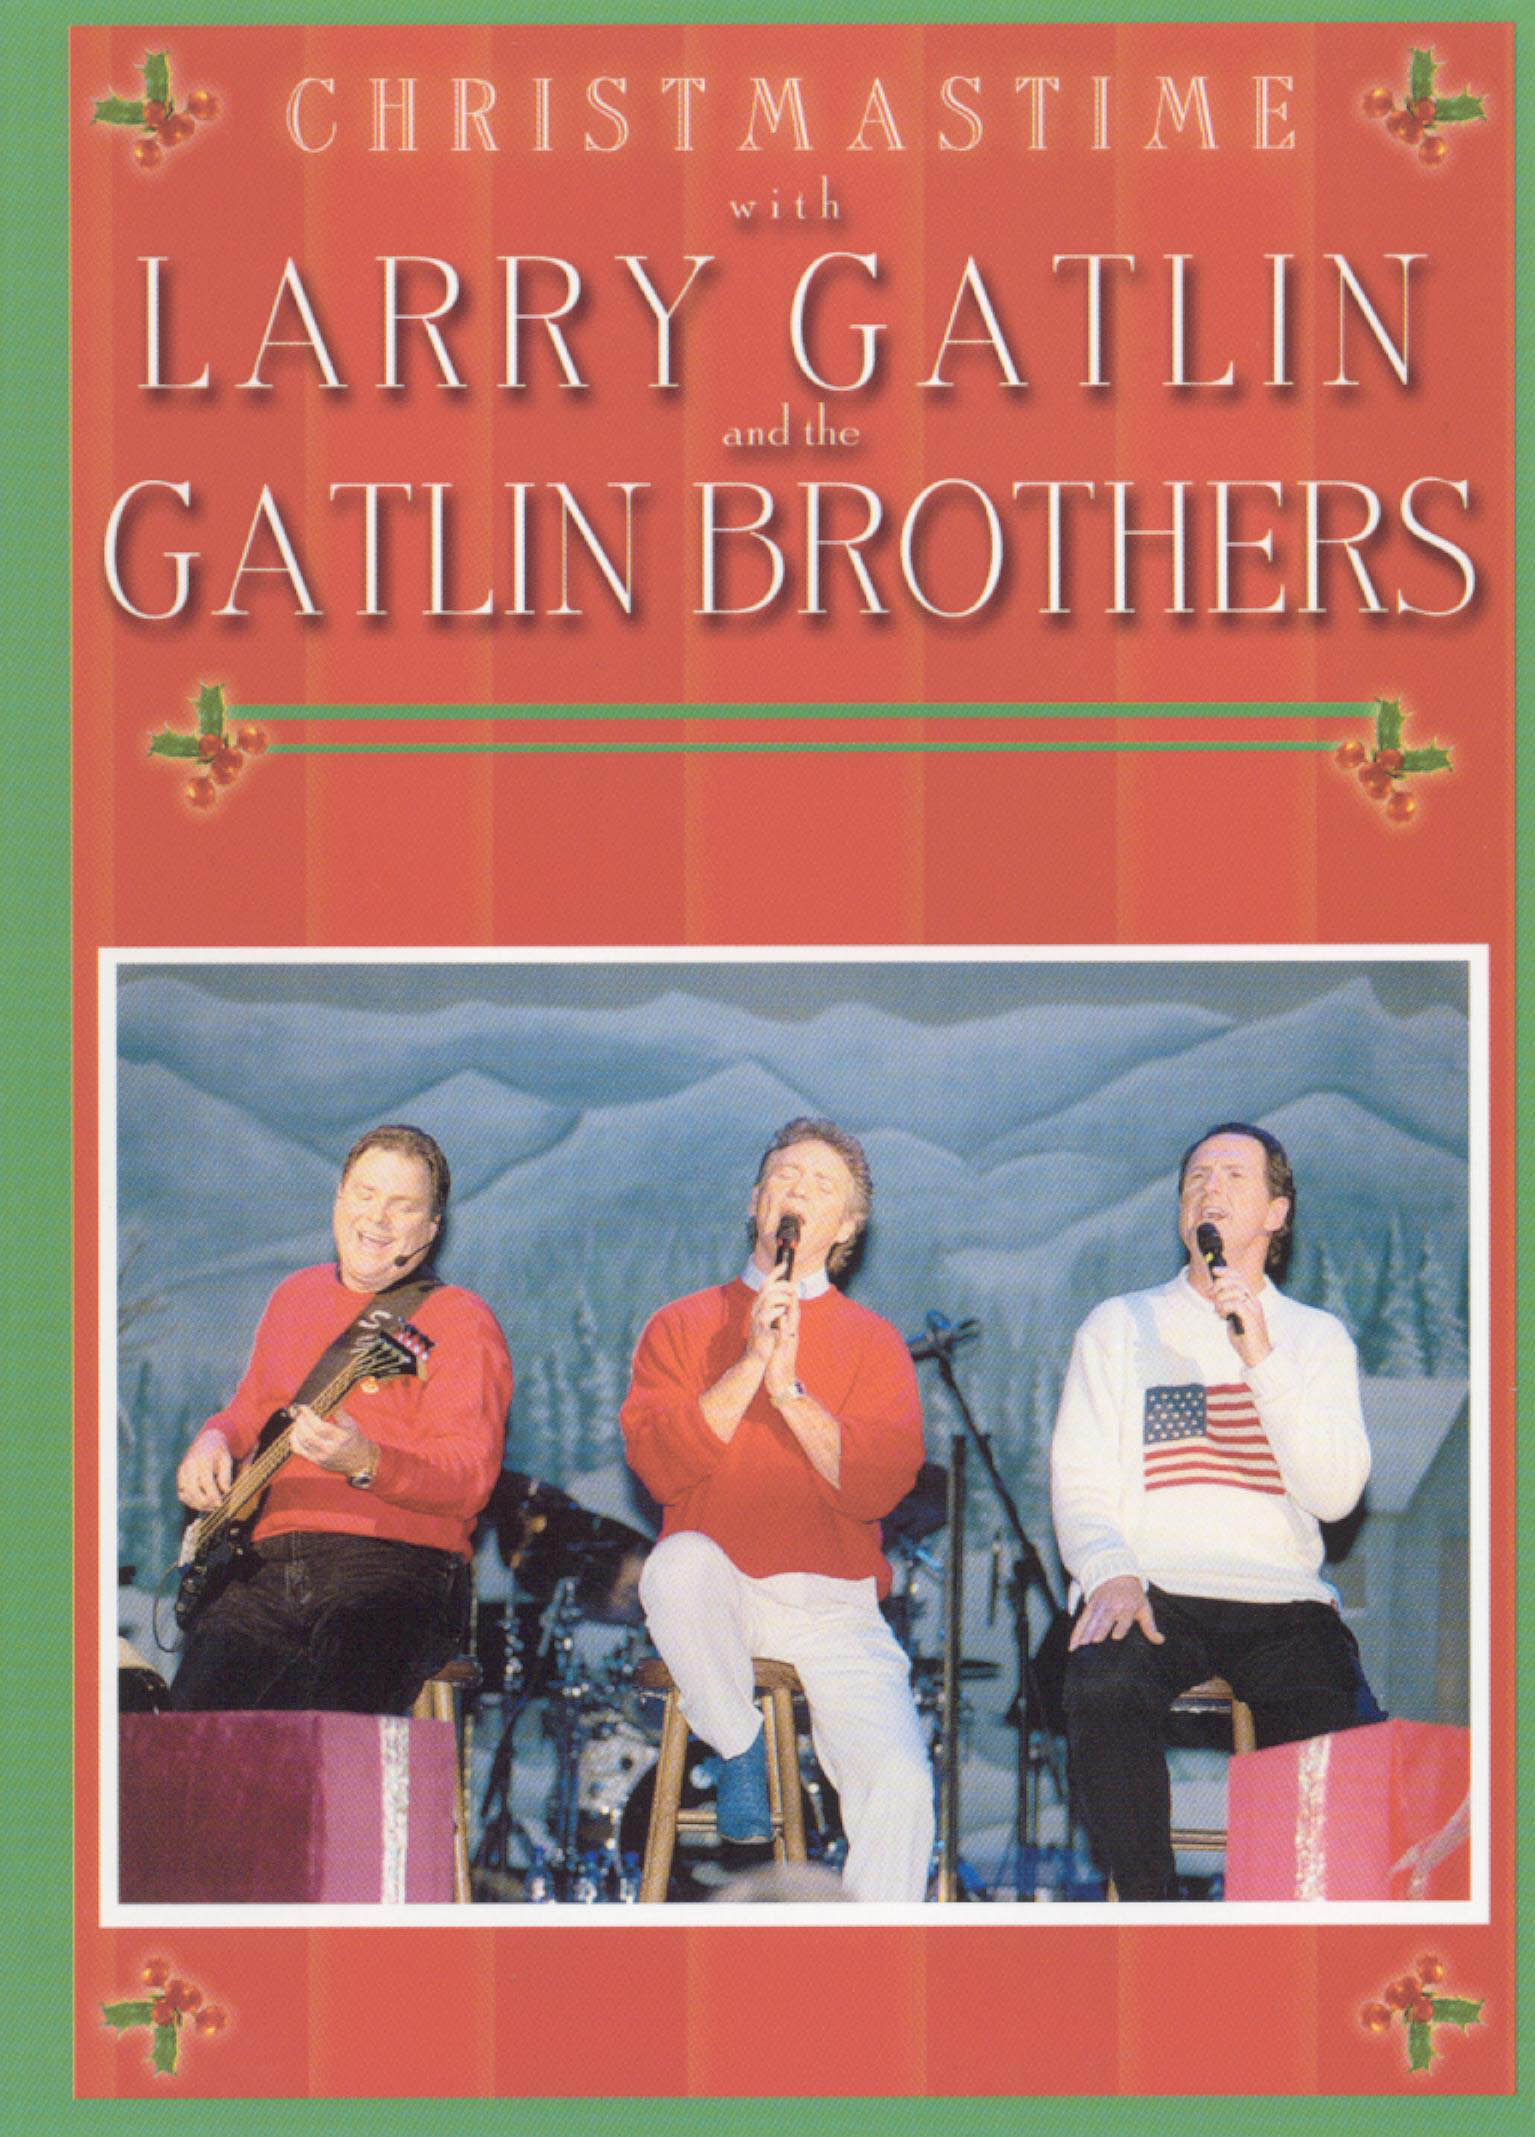 Christmastime With Larry Gatlin and the Gatlin Brothers